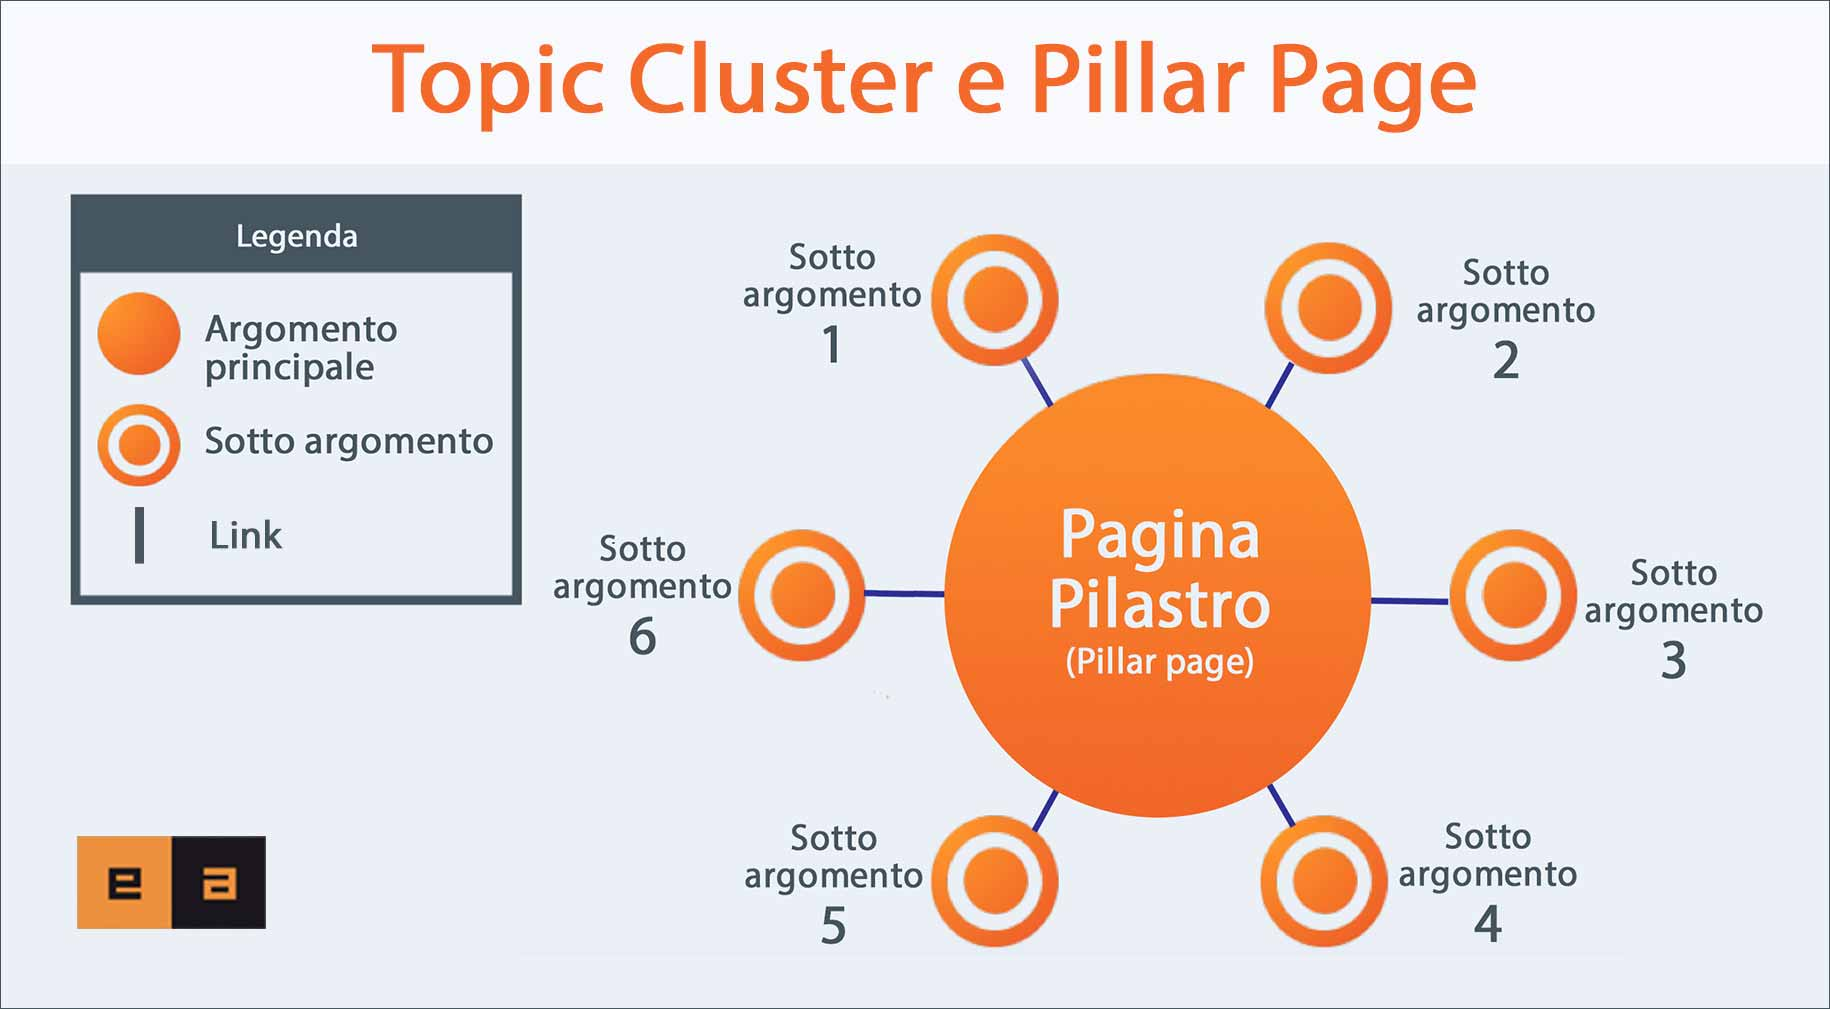 pillar-page-e-topic-cluster_v2-inbound-marketing-torino